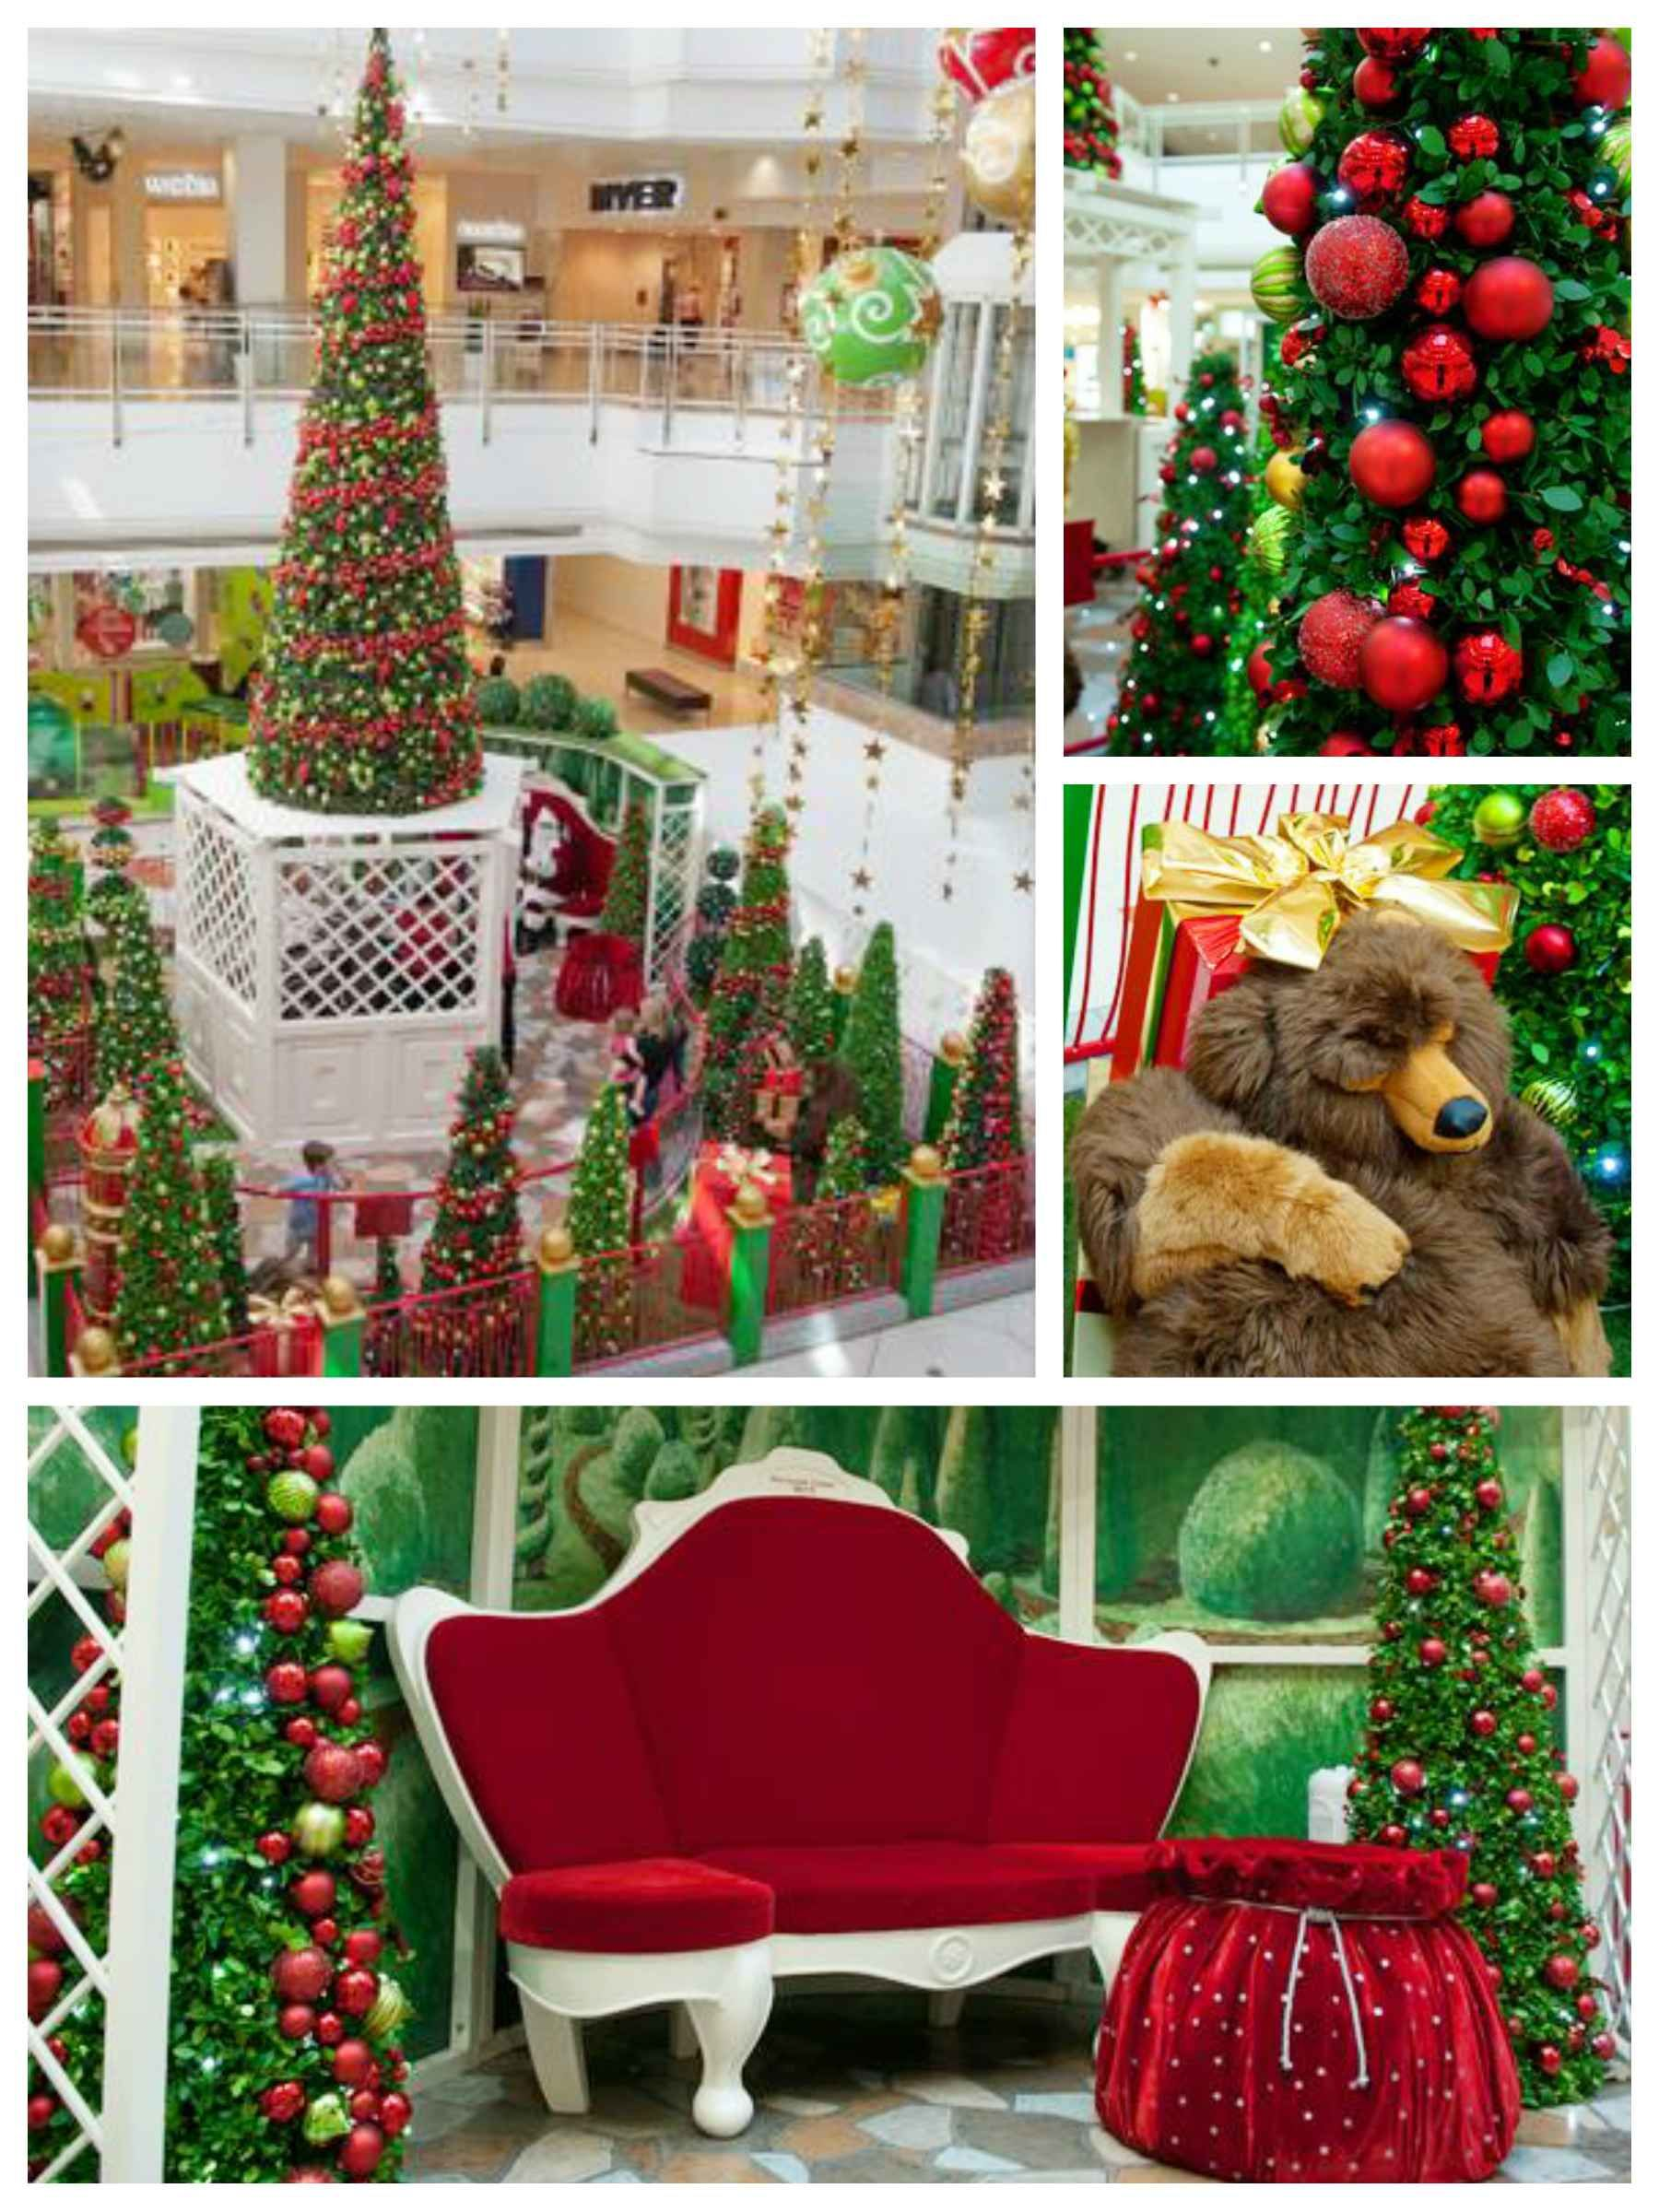 Christmas Decorations At Albrook Mall Decorating With Christmas Lights Christmas Decorations Christmas Tree Crafts